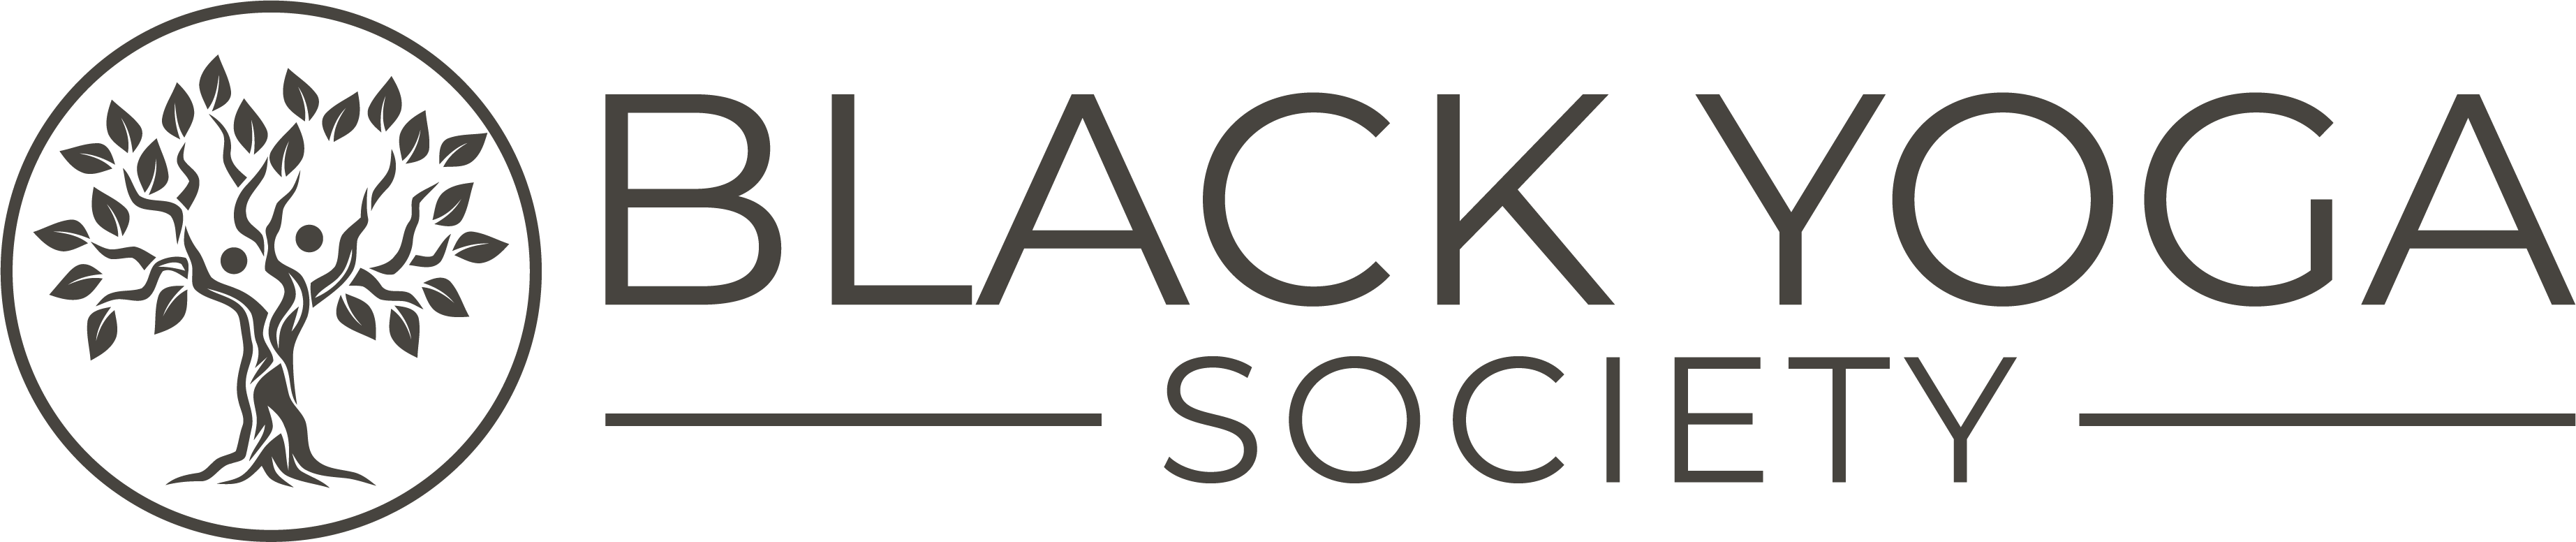 Black Yoga Society